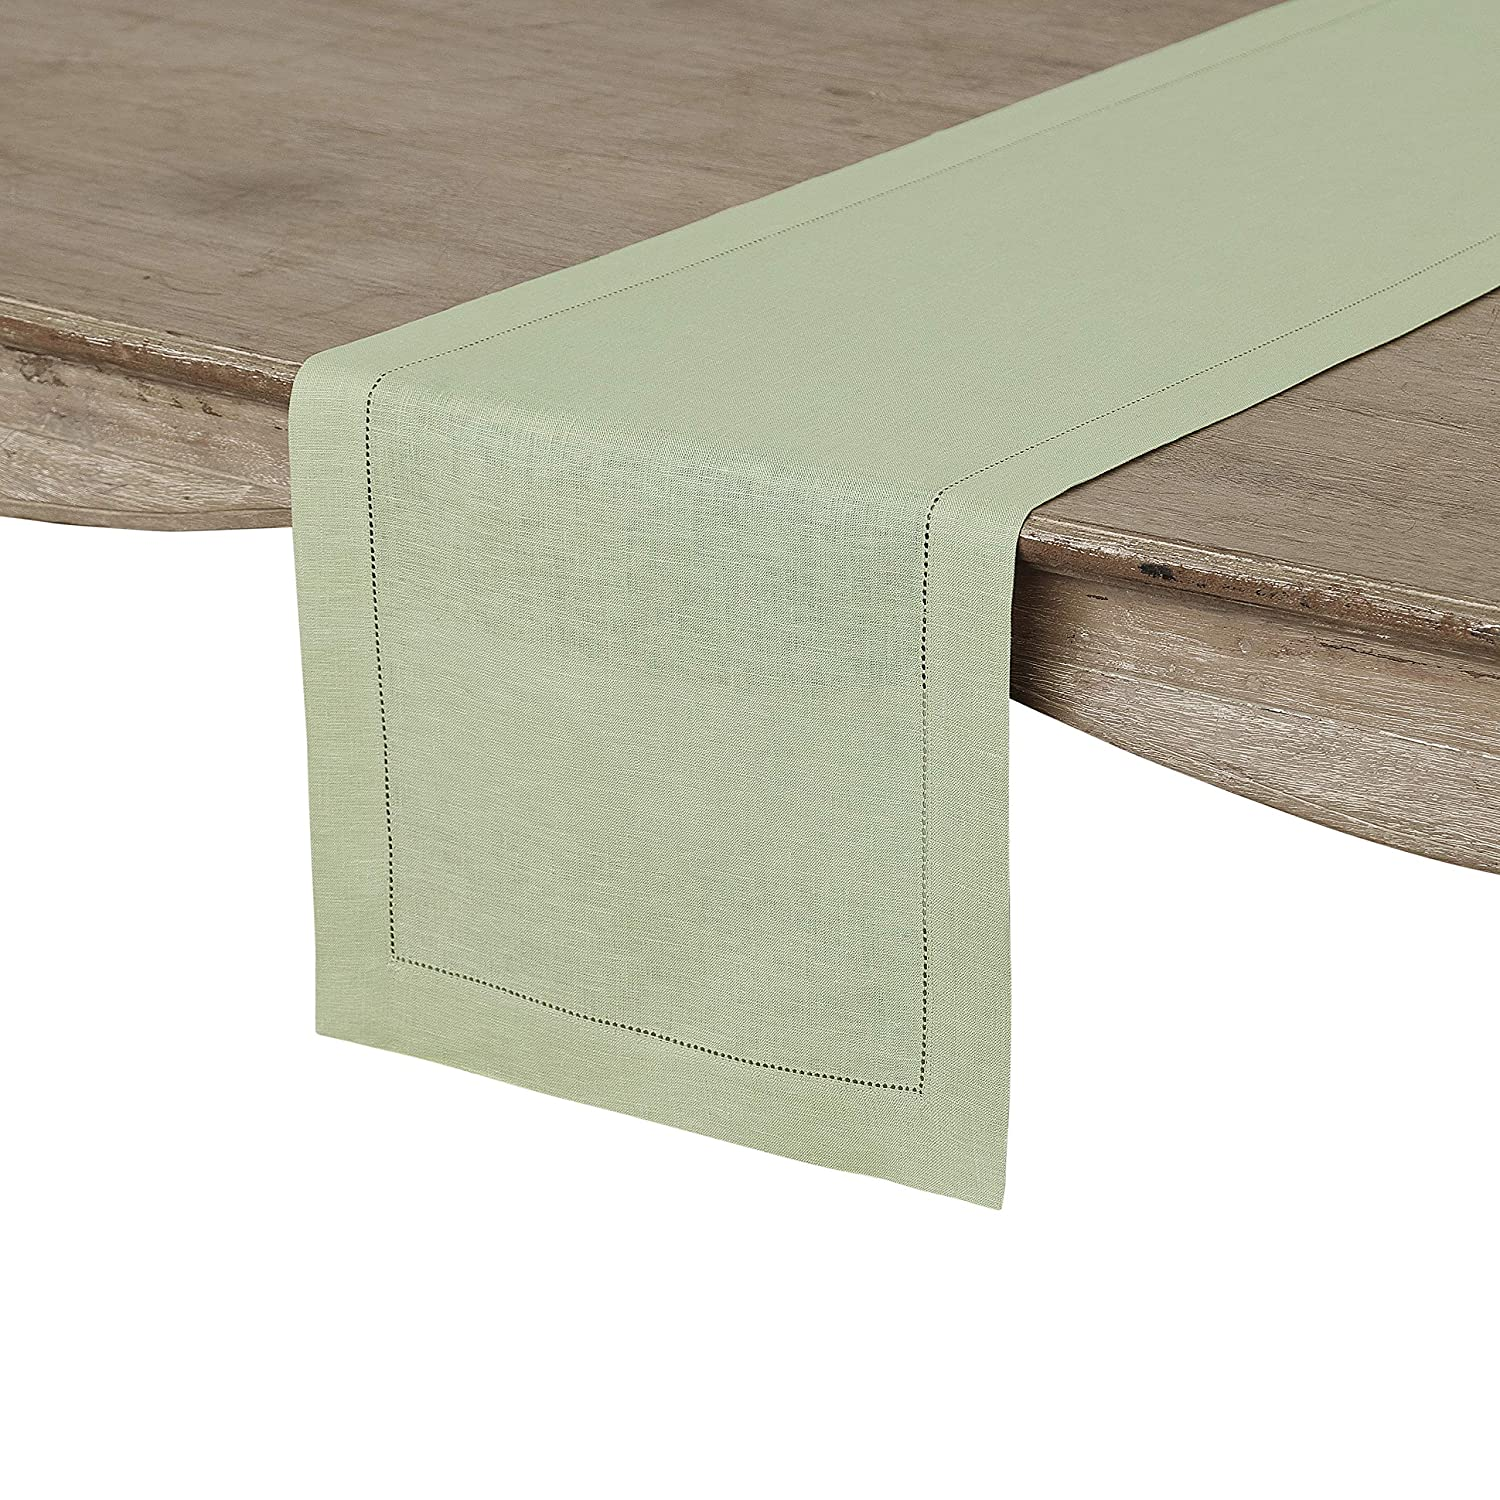 Solino Home Hemstitch Linen Table Runner - 14 x 72 Inch, Handcrafted from European Flax, Machine Washable Classic Hemstitch - Sage Green